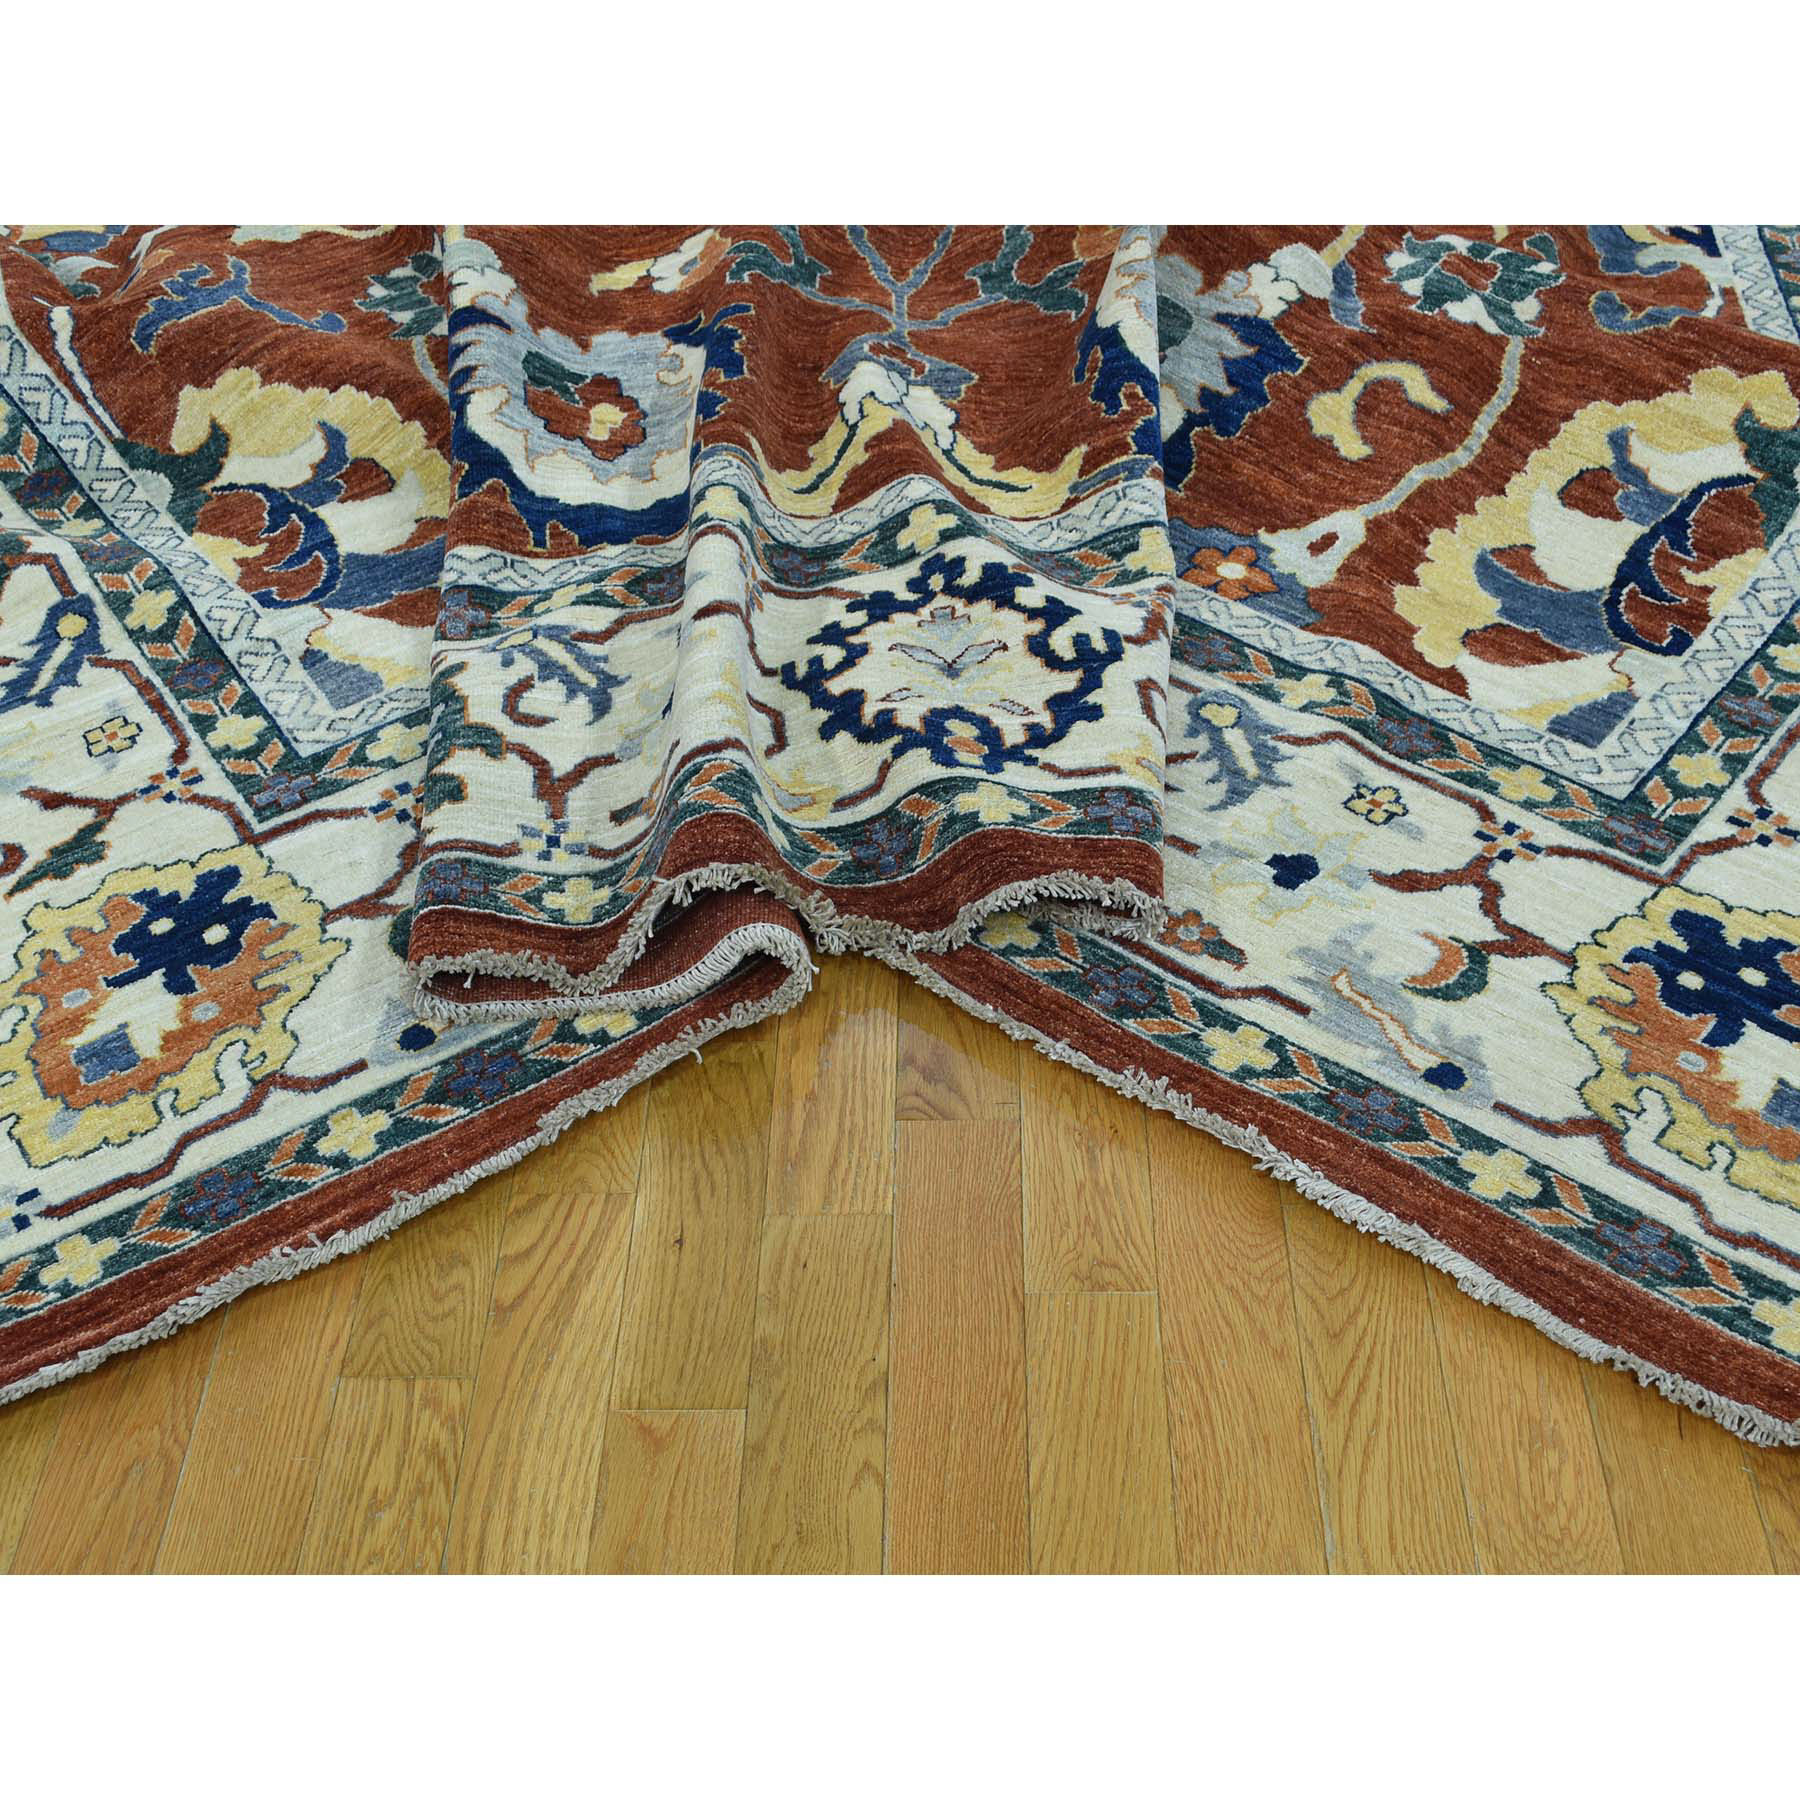 10-x14- Hand-Knotted Pure Wool Peshawar Sultanabad Design Oriental Rug